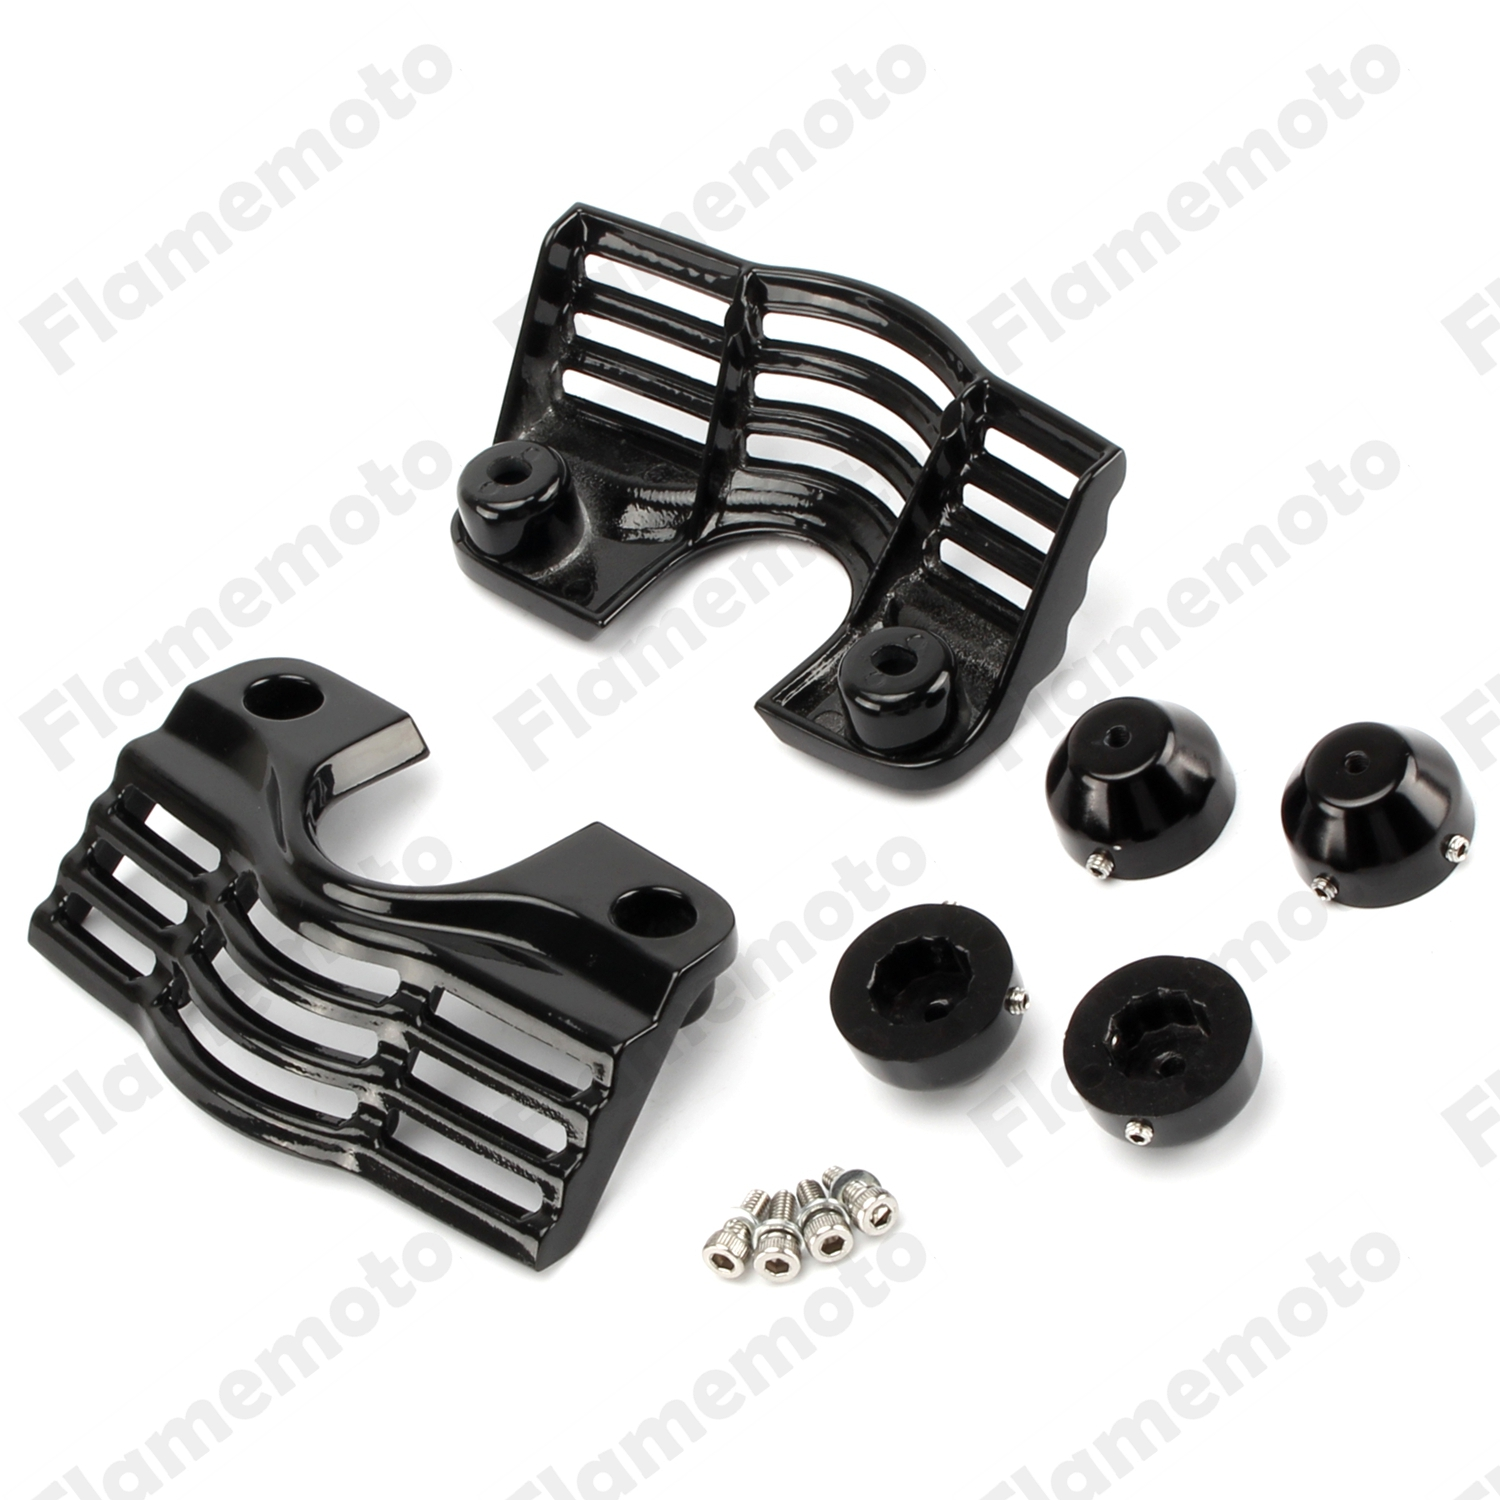 ФОТО Motorcycle Accessories Black Finned Spark Slotted Plug Head Bolt Covers For Harley Trikes Road King